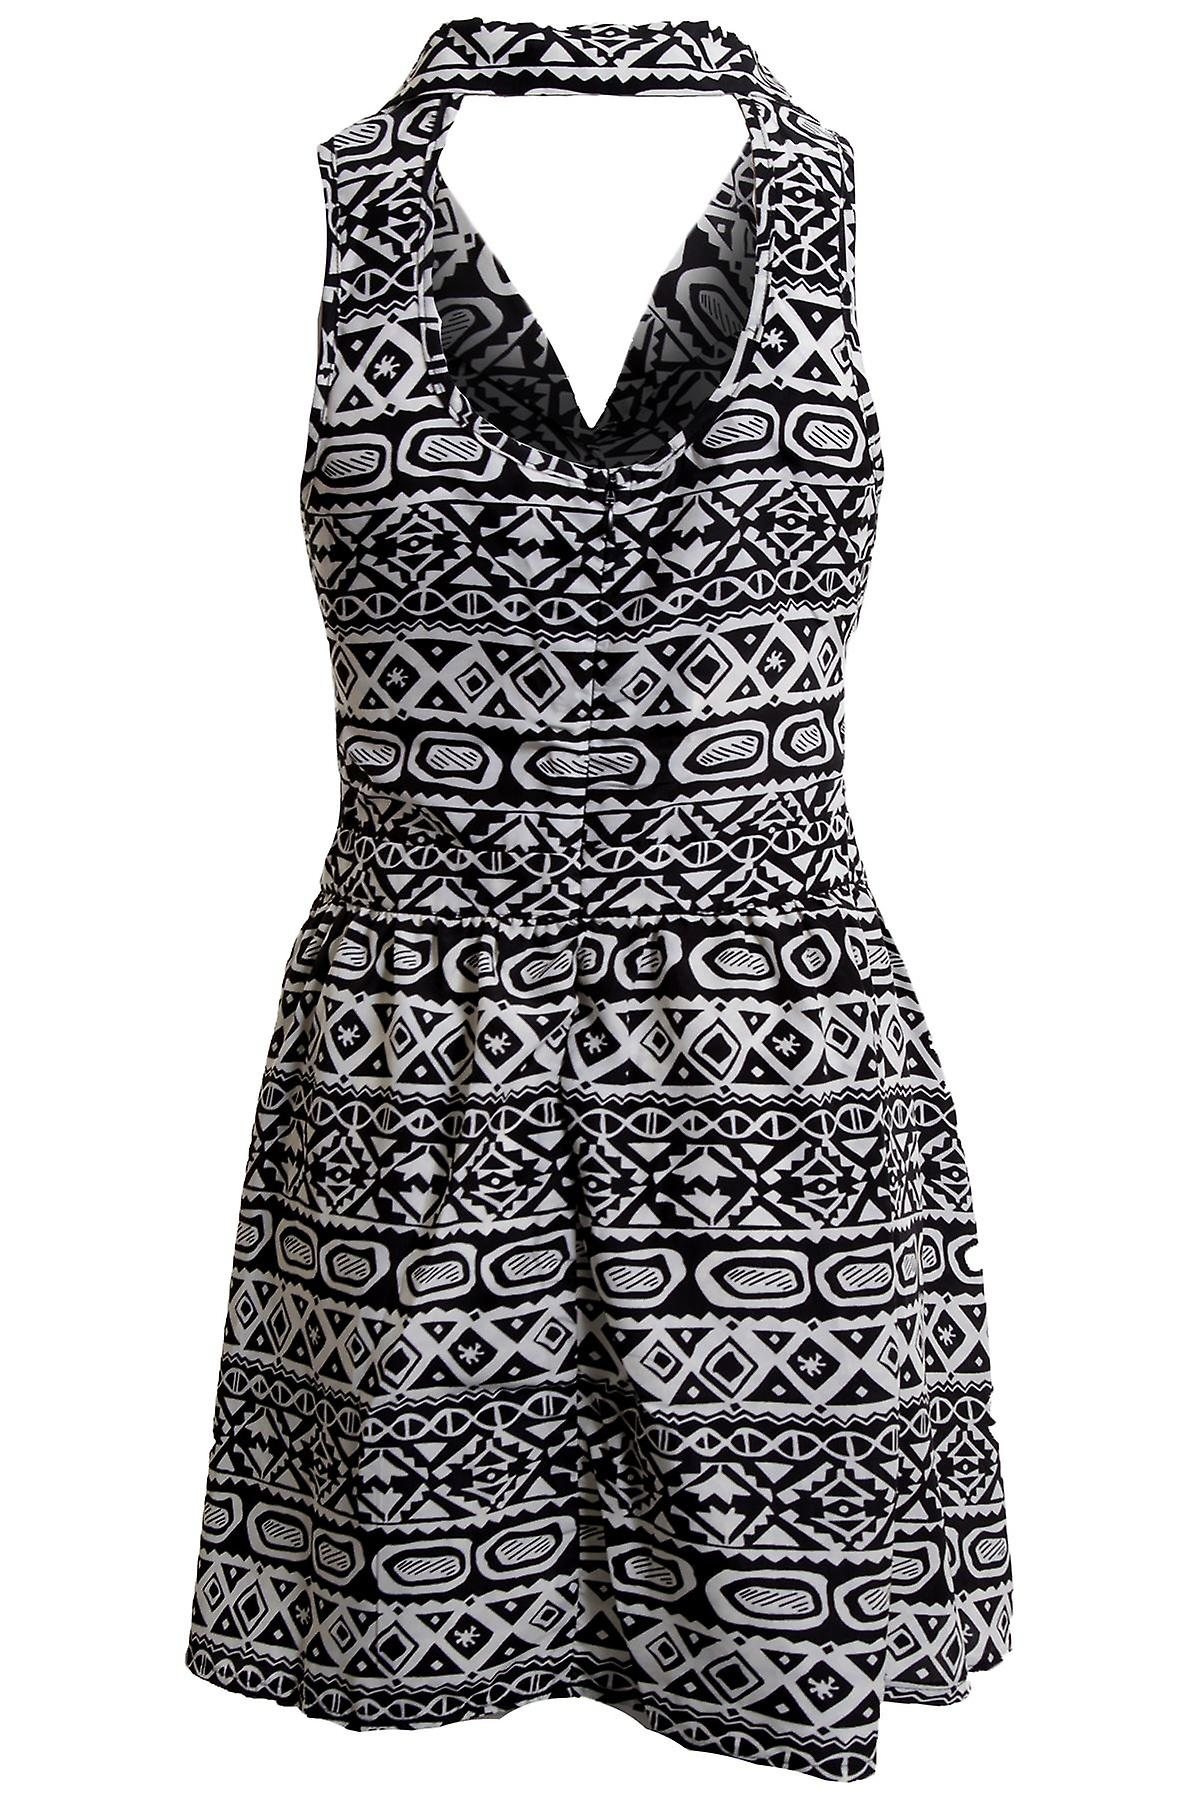 New Ladies Black White Tribal Aztec Print Buttoned Open Neck Women's Dress